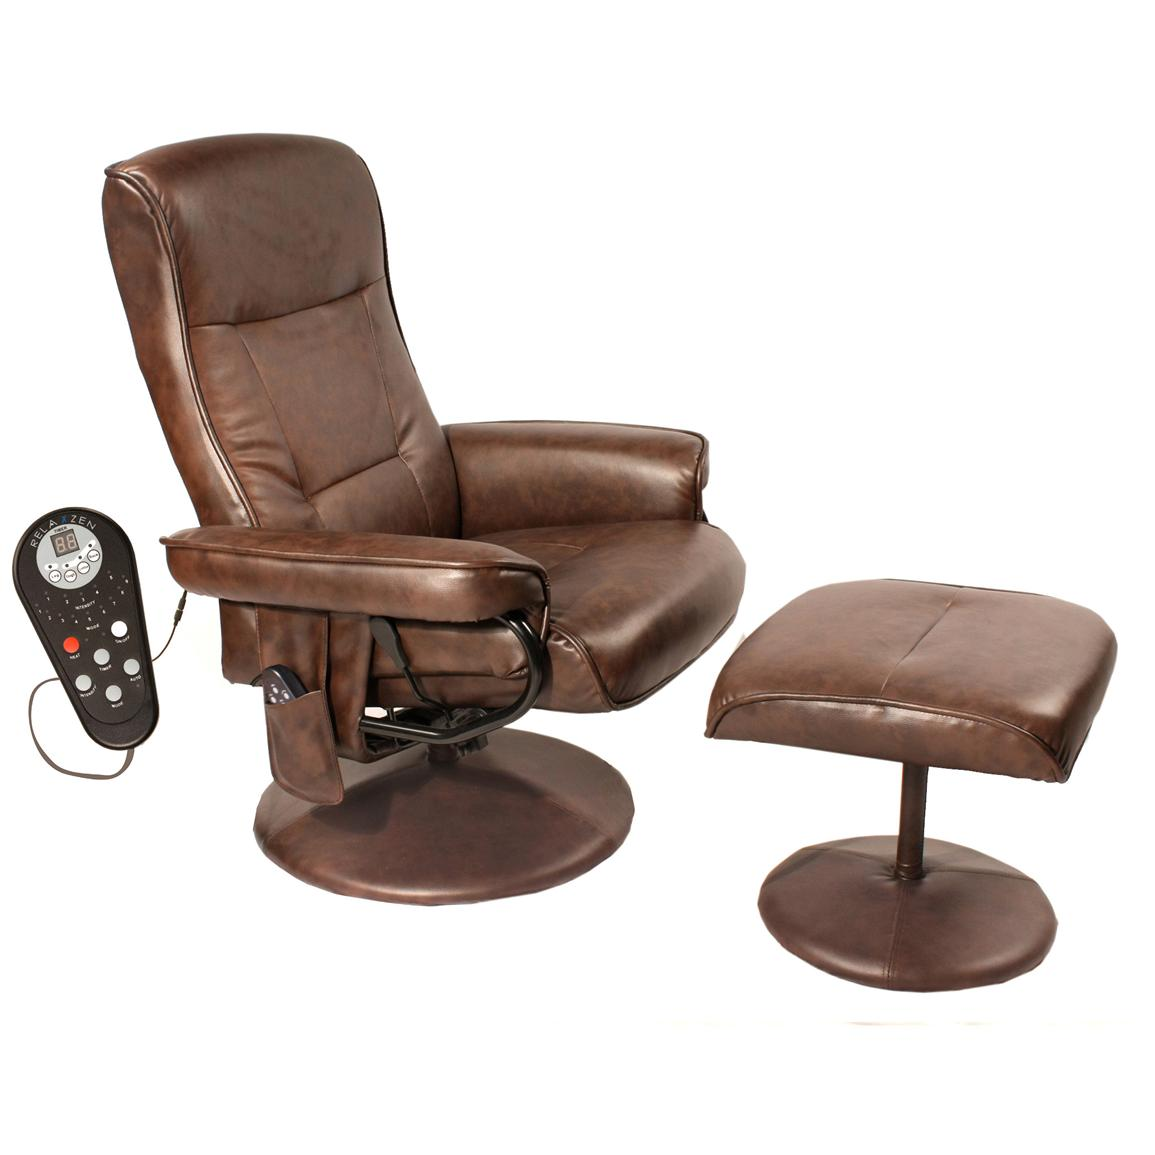 Comfort Products Leisure Recliner with 8-Motor Massage and Heat, Front Side